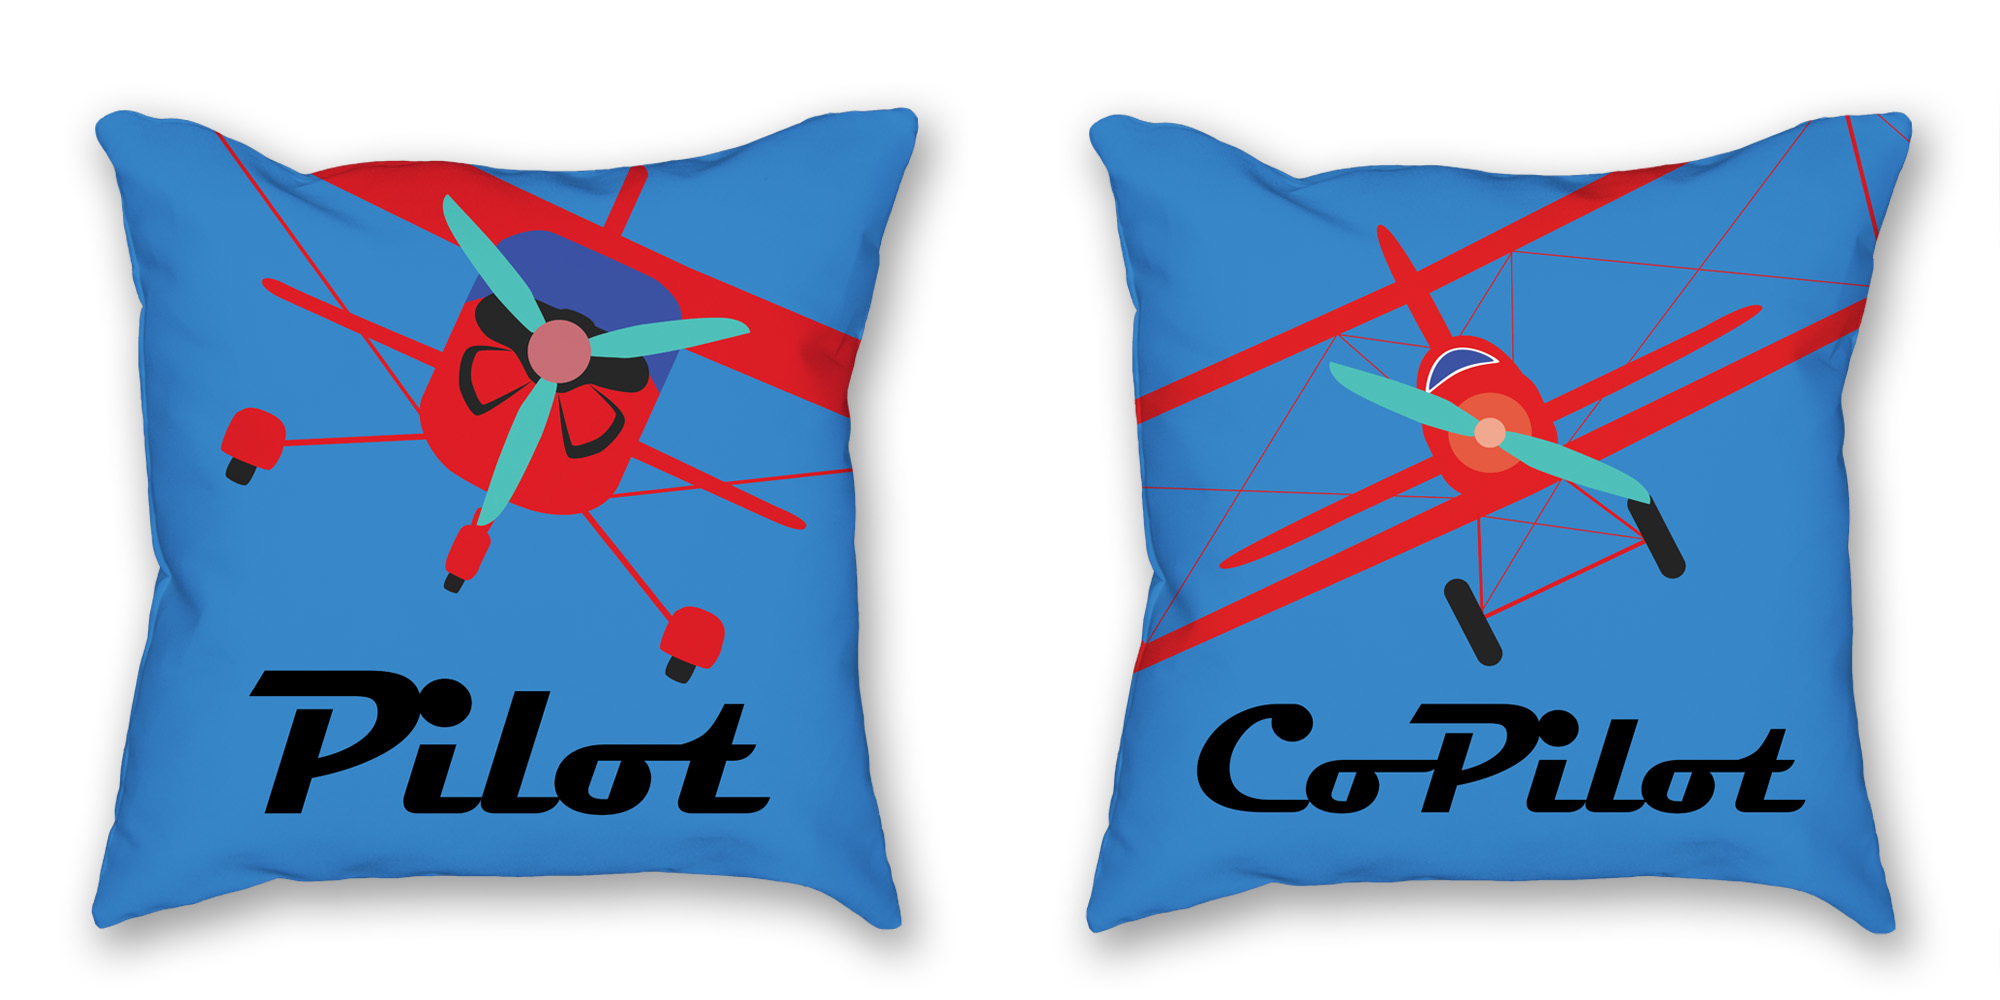 Pilot, Co-Pilot pillow gift set